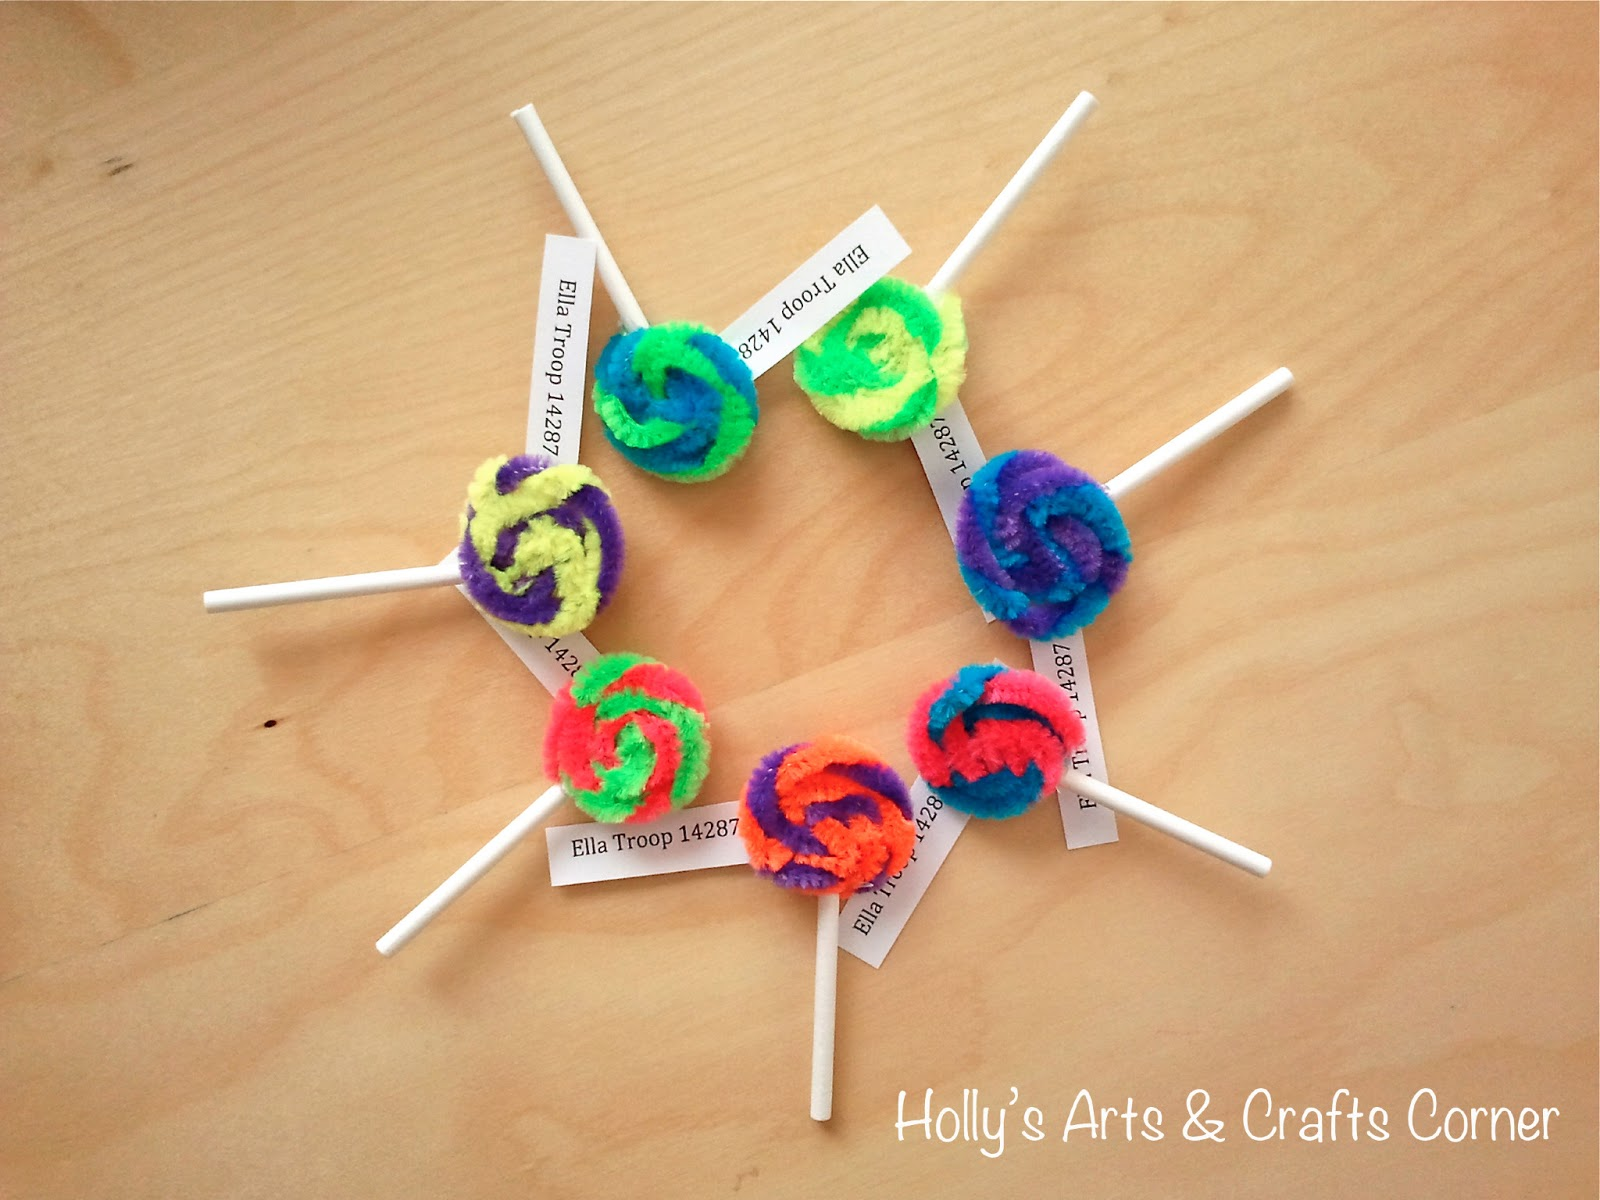 Easy Girl Scout Swap Ideas http://hollysartcorner.blogspot.com/2013/01/craft-project-girl-scout-swaps.html